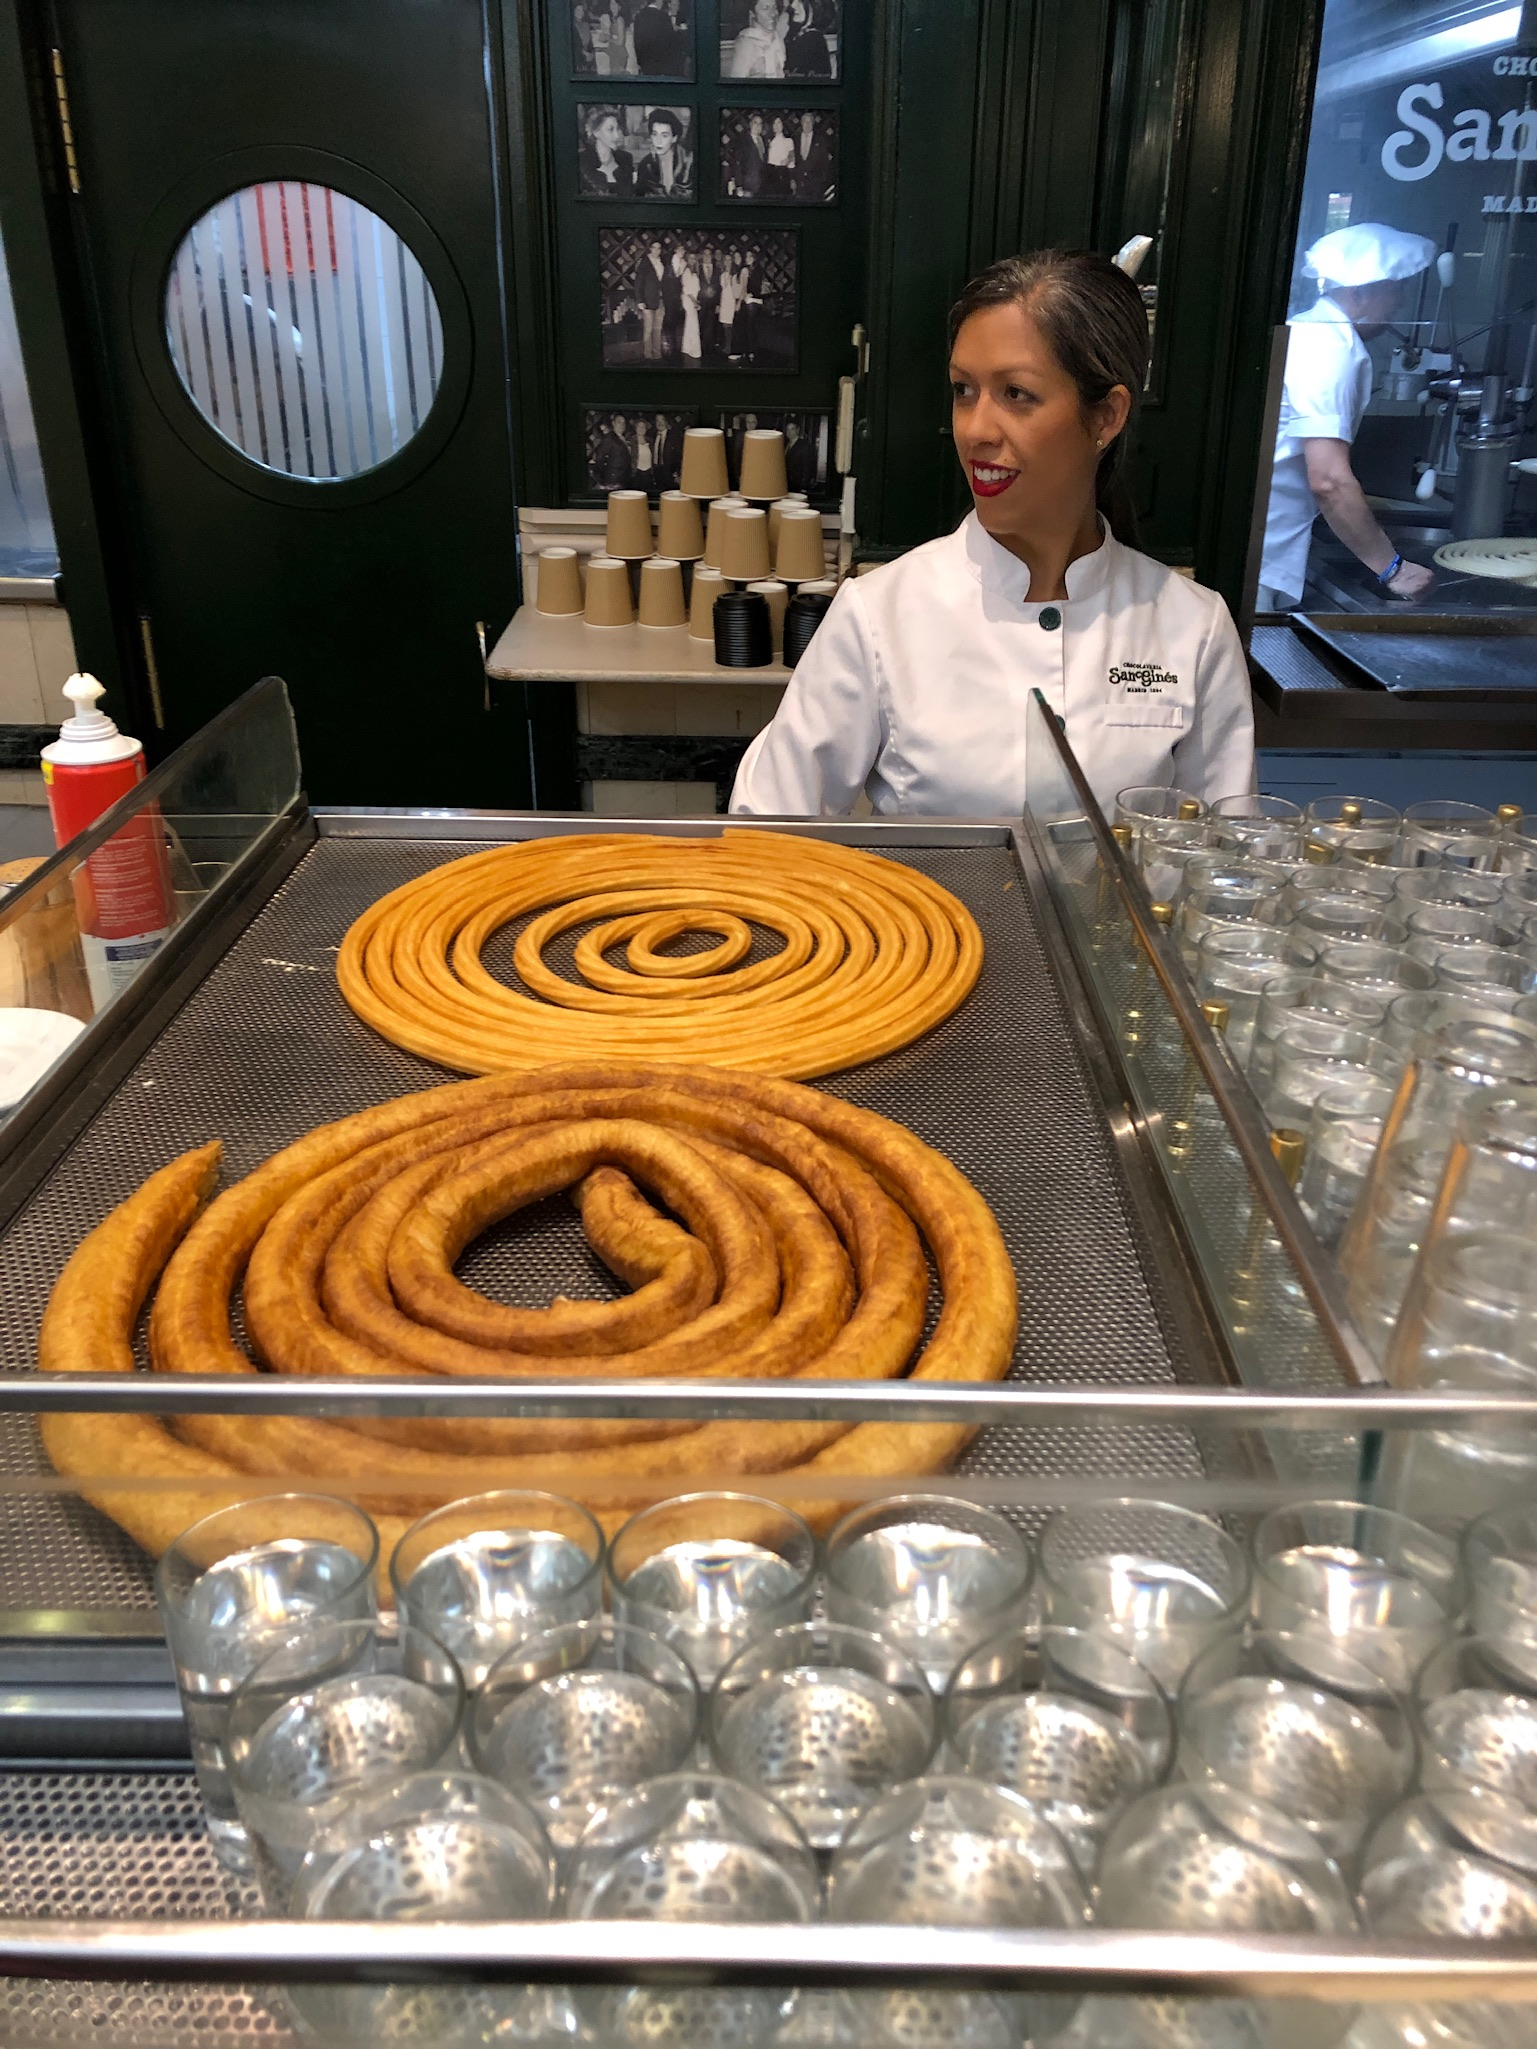 The best Churros in Madrid!